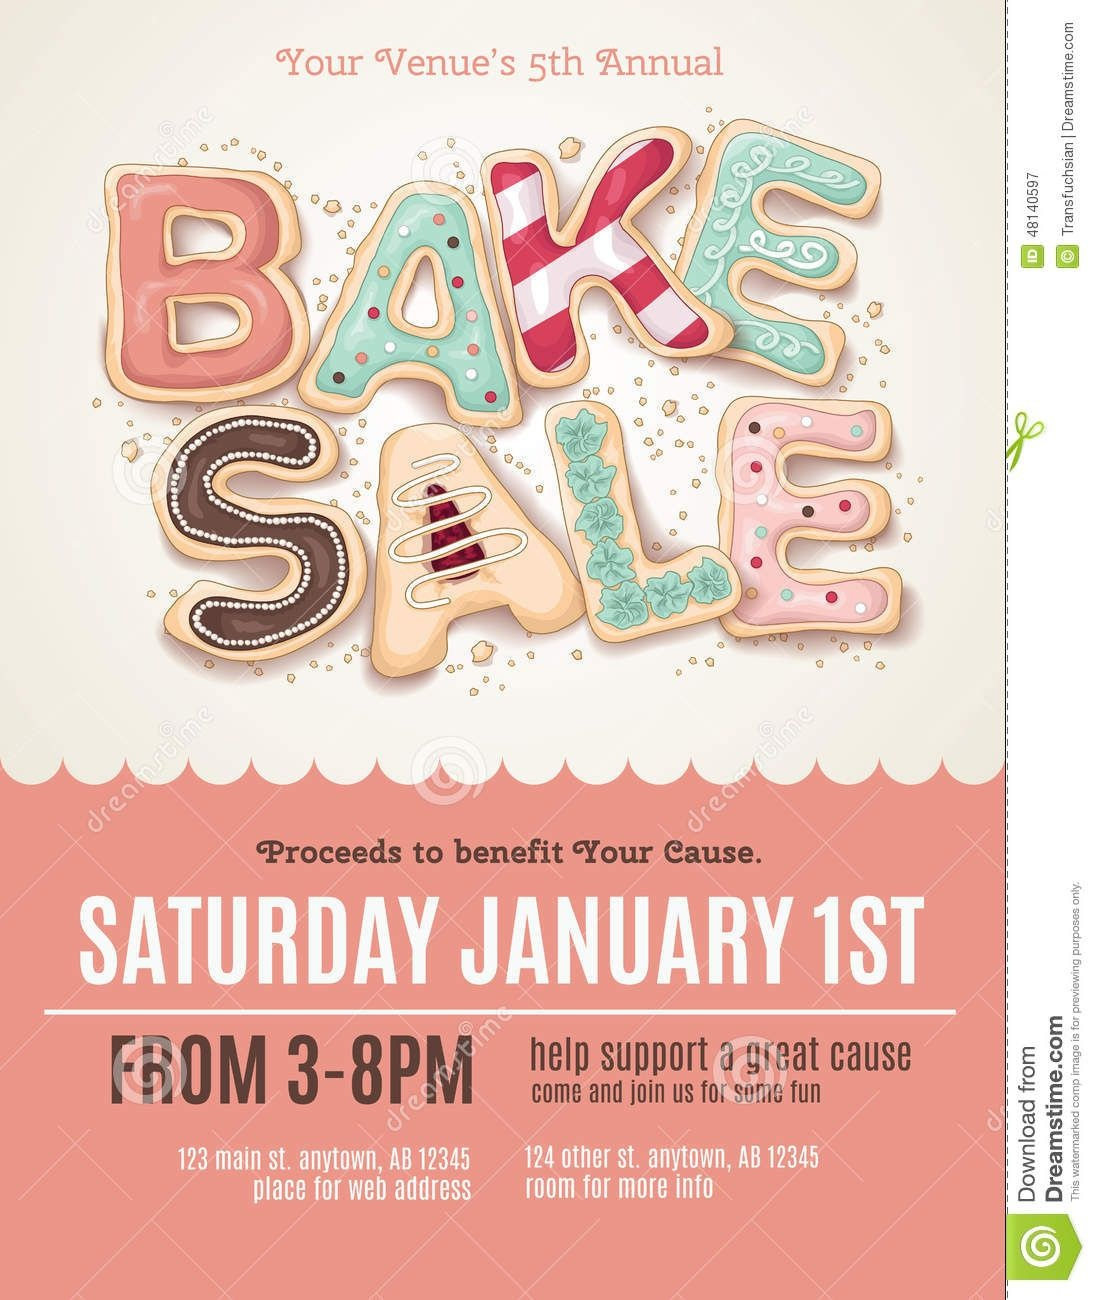 Fun Cookie Bake Sale Flyer Template - Download From Over 56 Million - Free Printable Flyer Templates